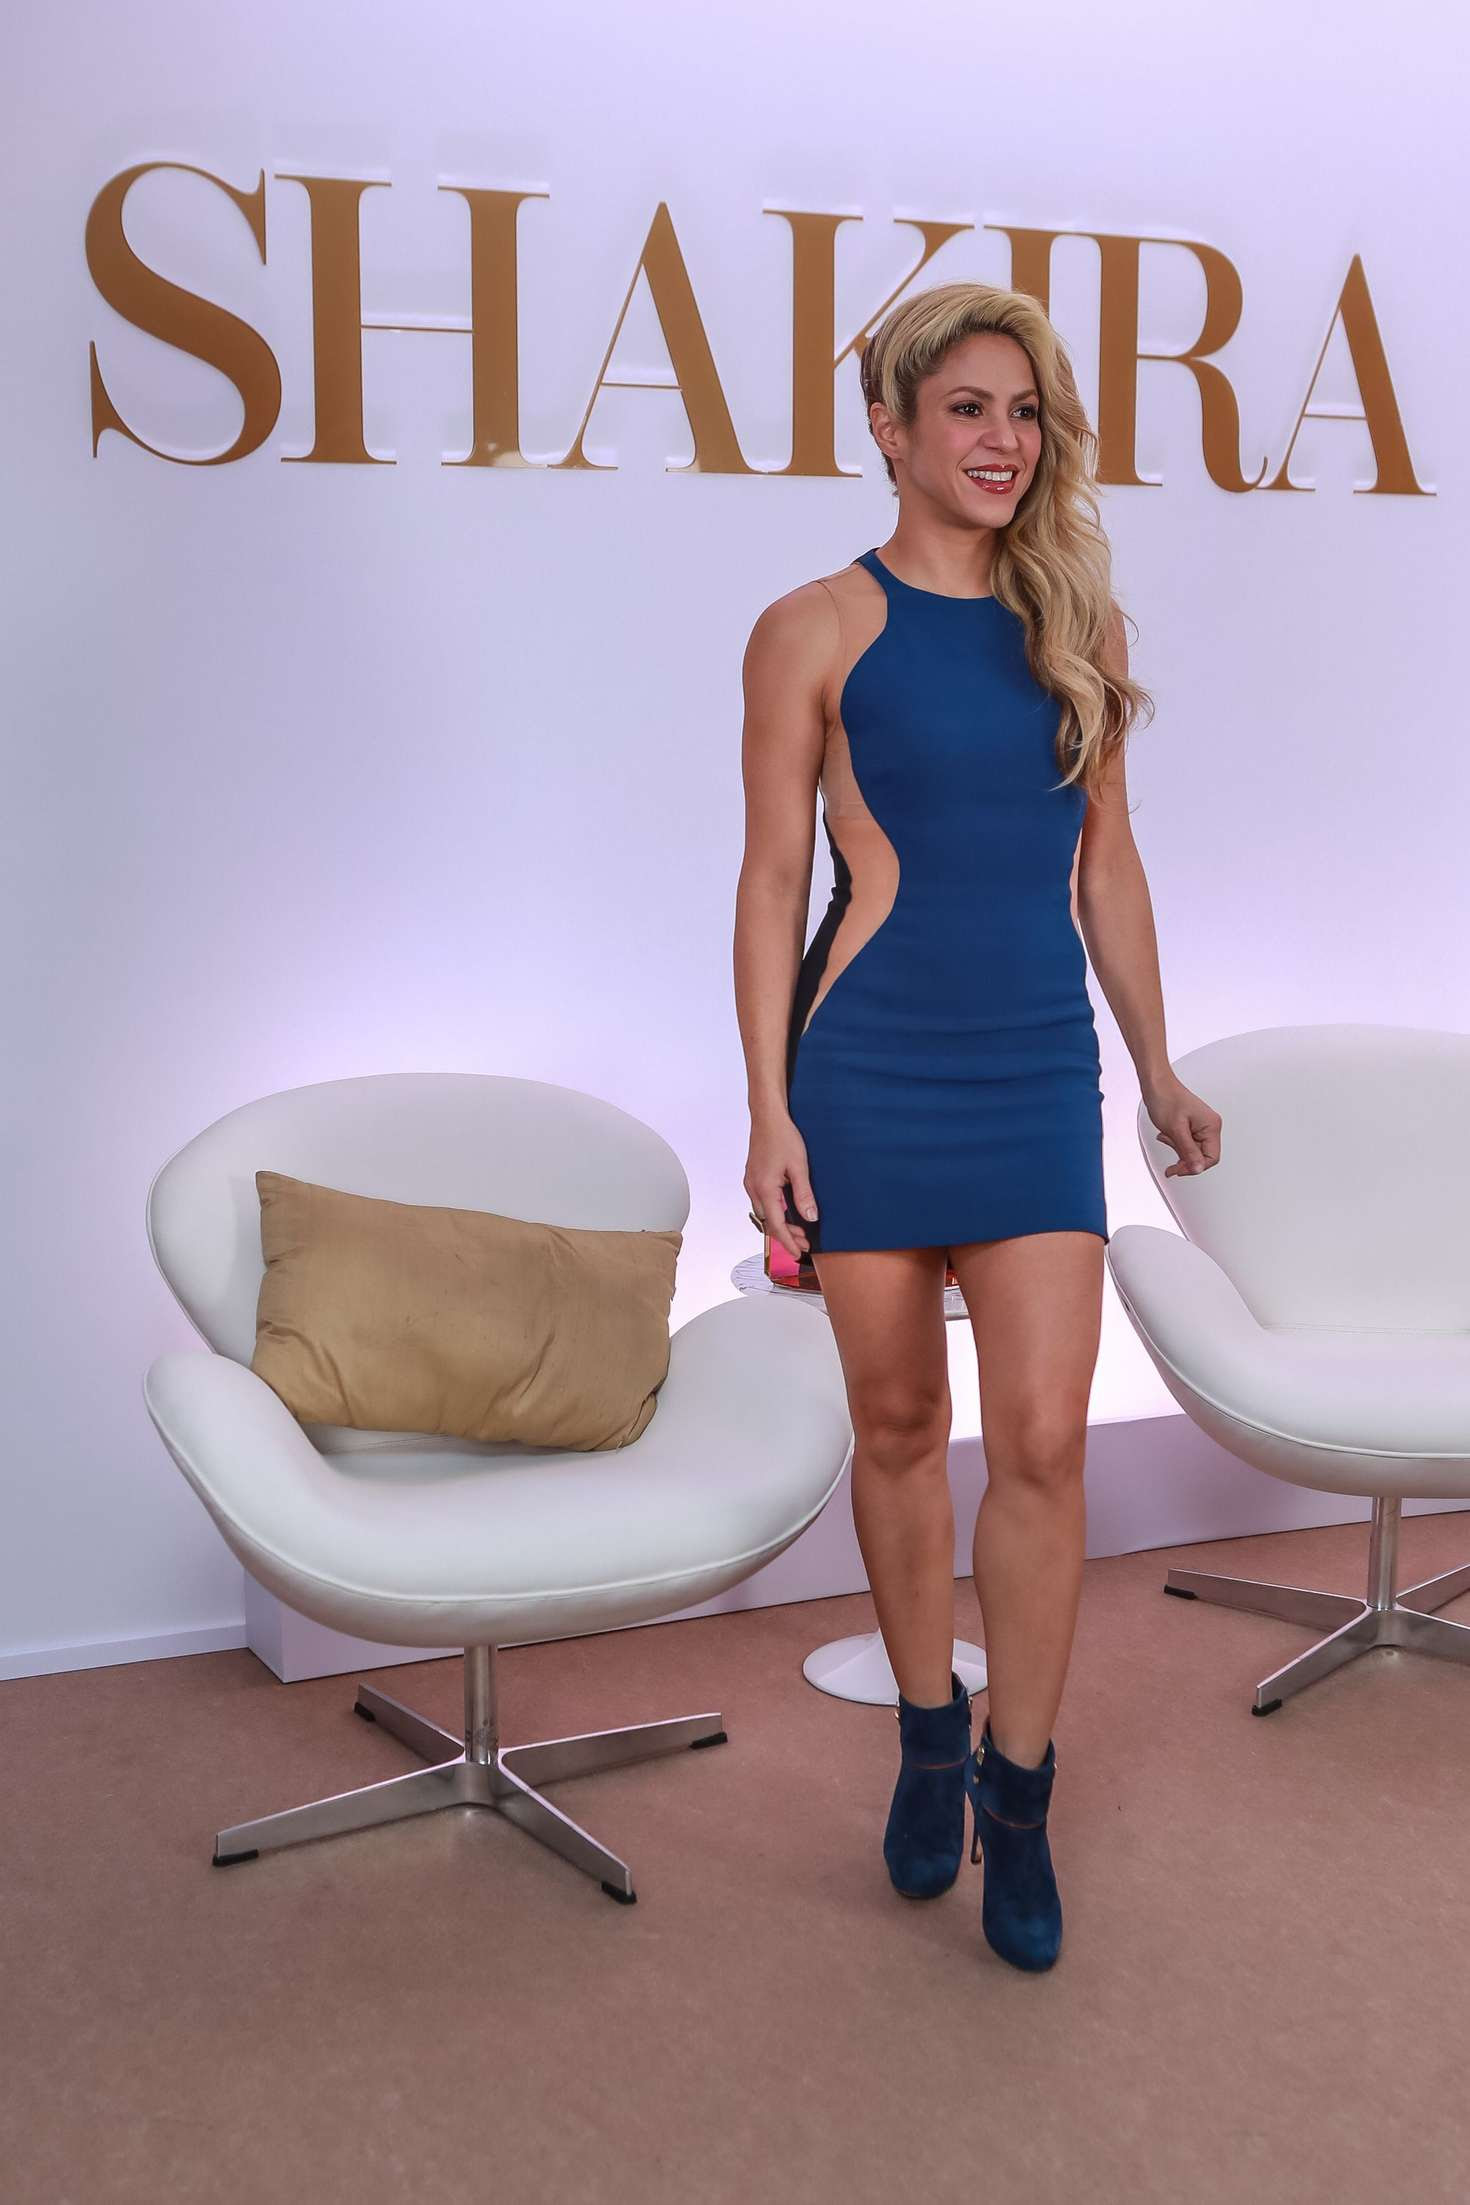 Shakira At Her New Fragrance Line Dance In Sao Paulo  Indian Girls Villa -9927